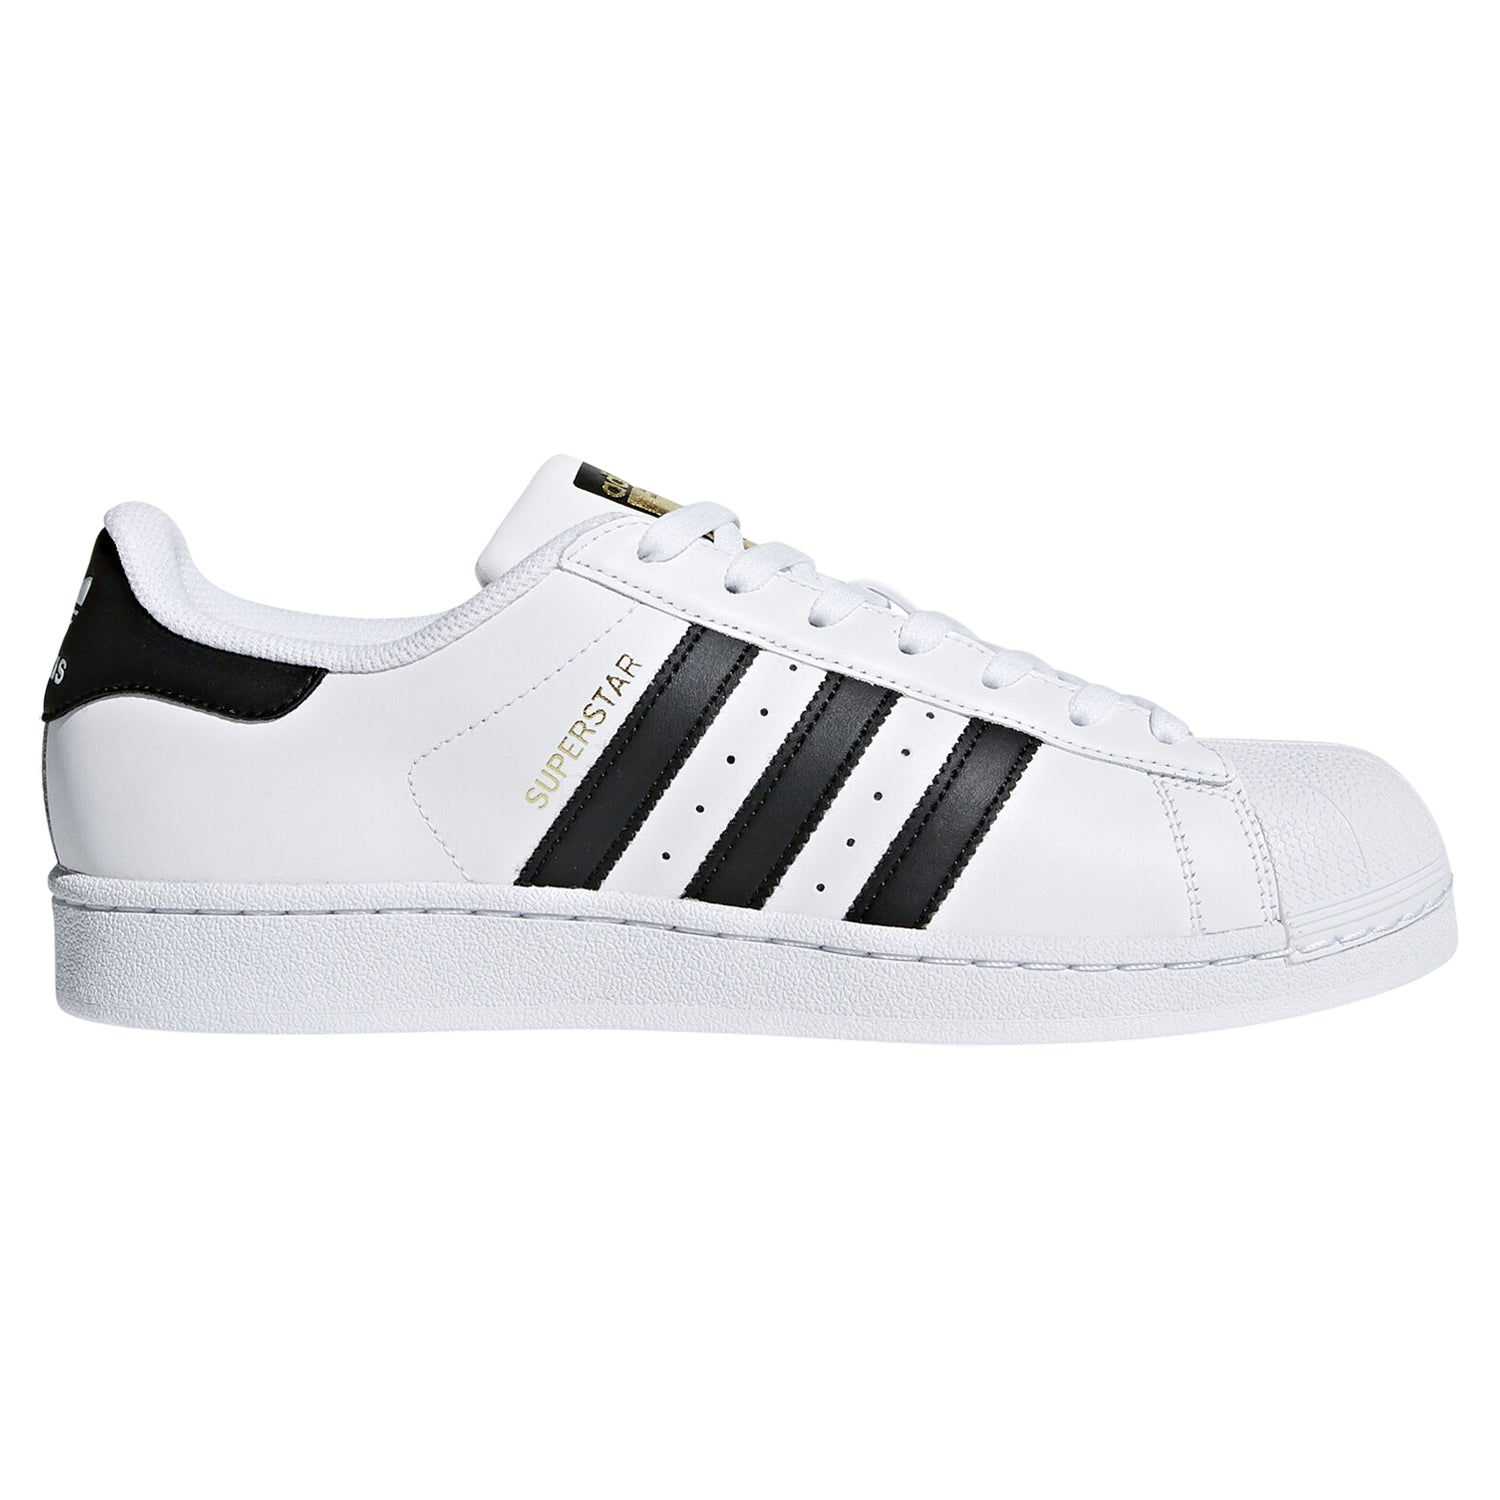 outlet store 49367 ddc4d adidas Originals Men's Superstar Trainers White